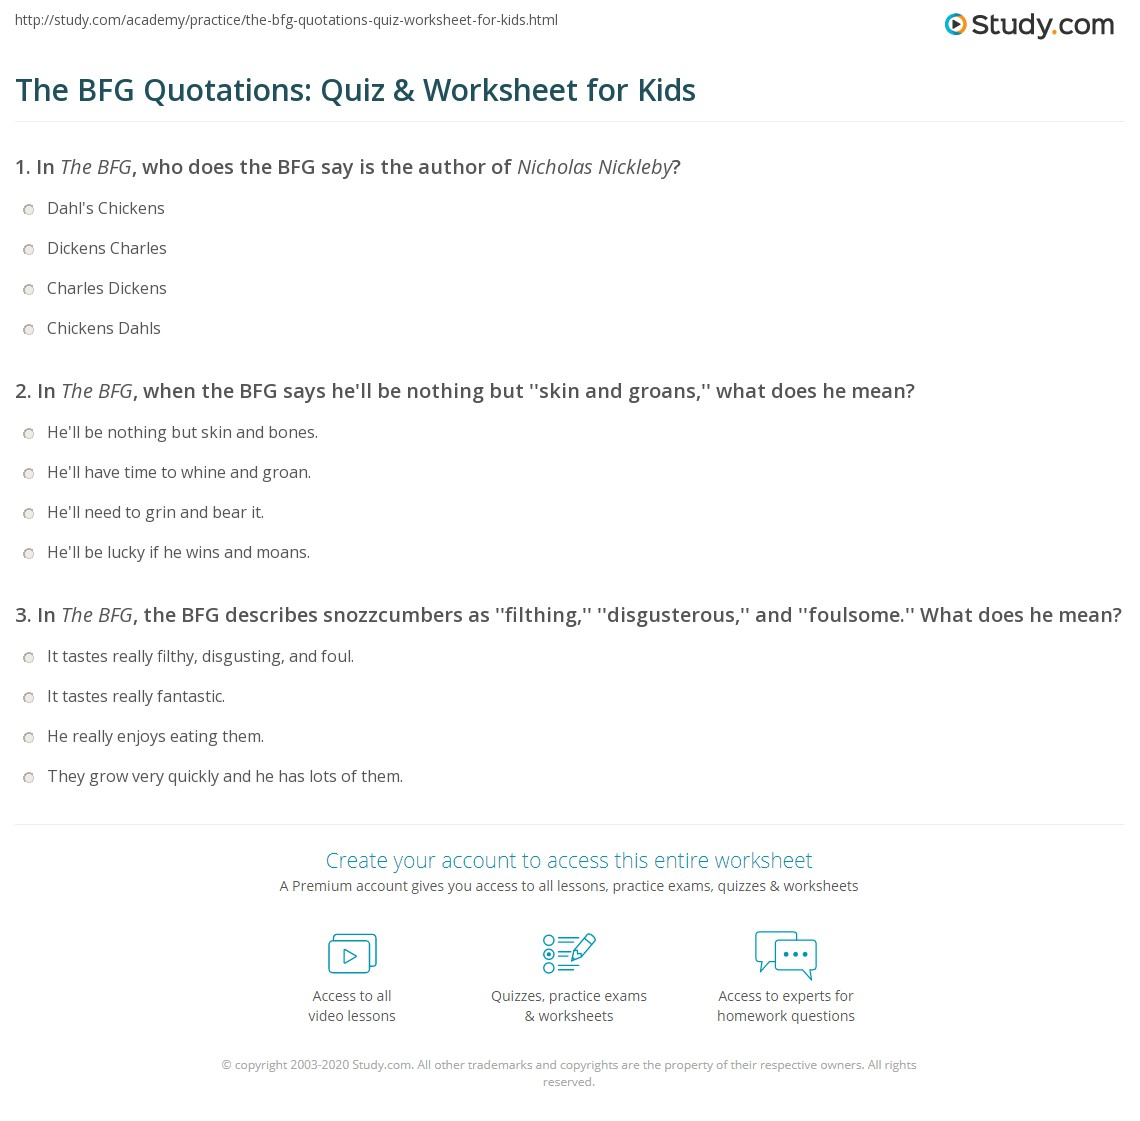 The Bfg Quotations Quiz Amp Worksheet For Kids